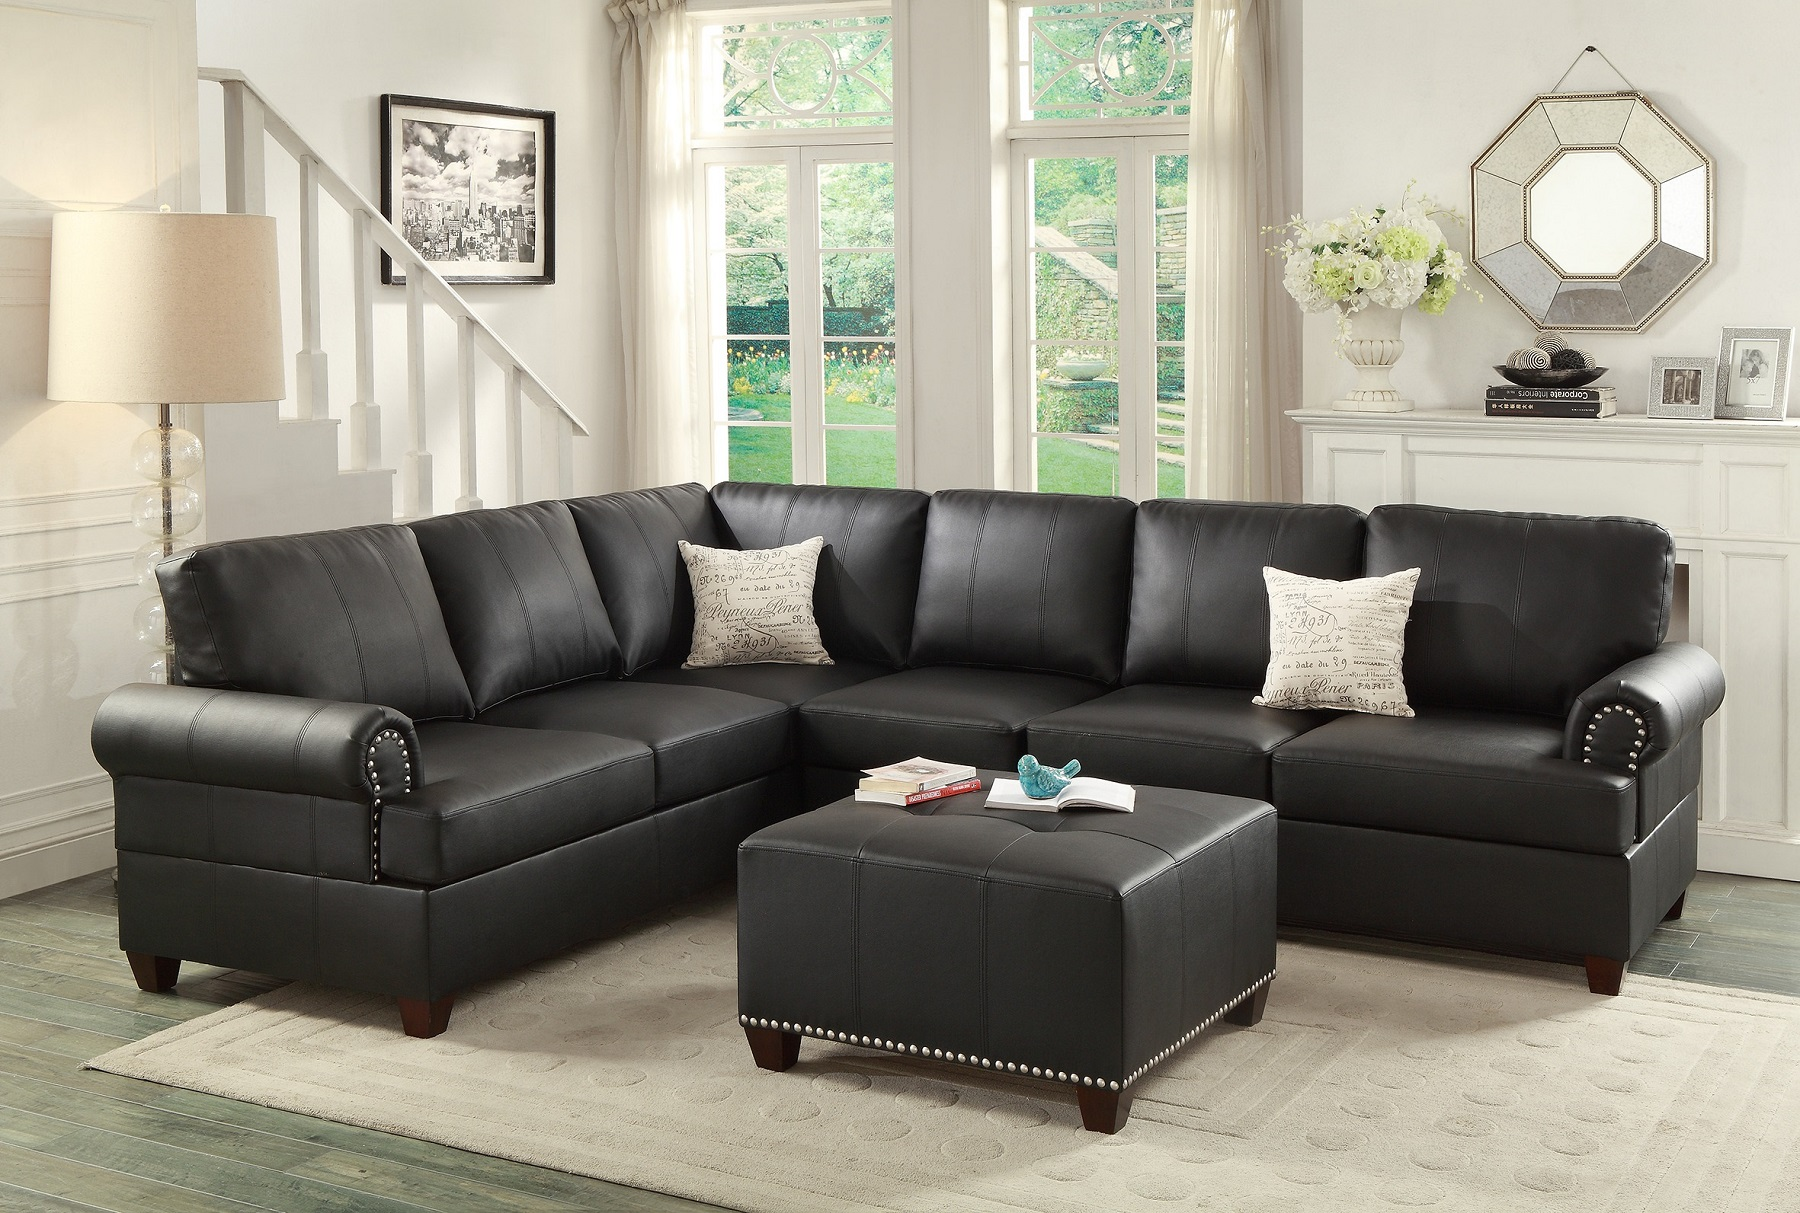 wedge table for sectional sofa upholstery cleaning dubai black leather loveseat hot sectionals